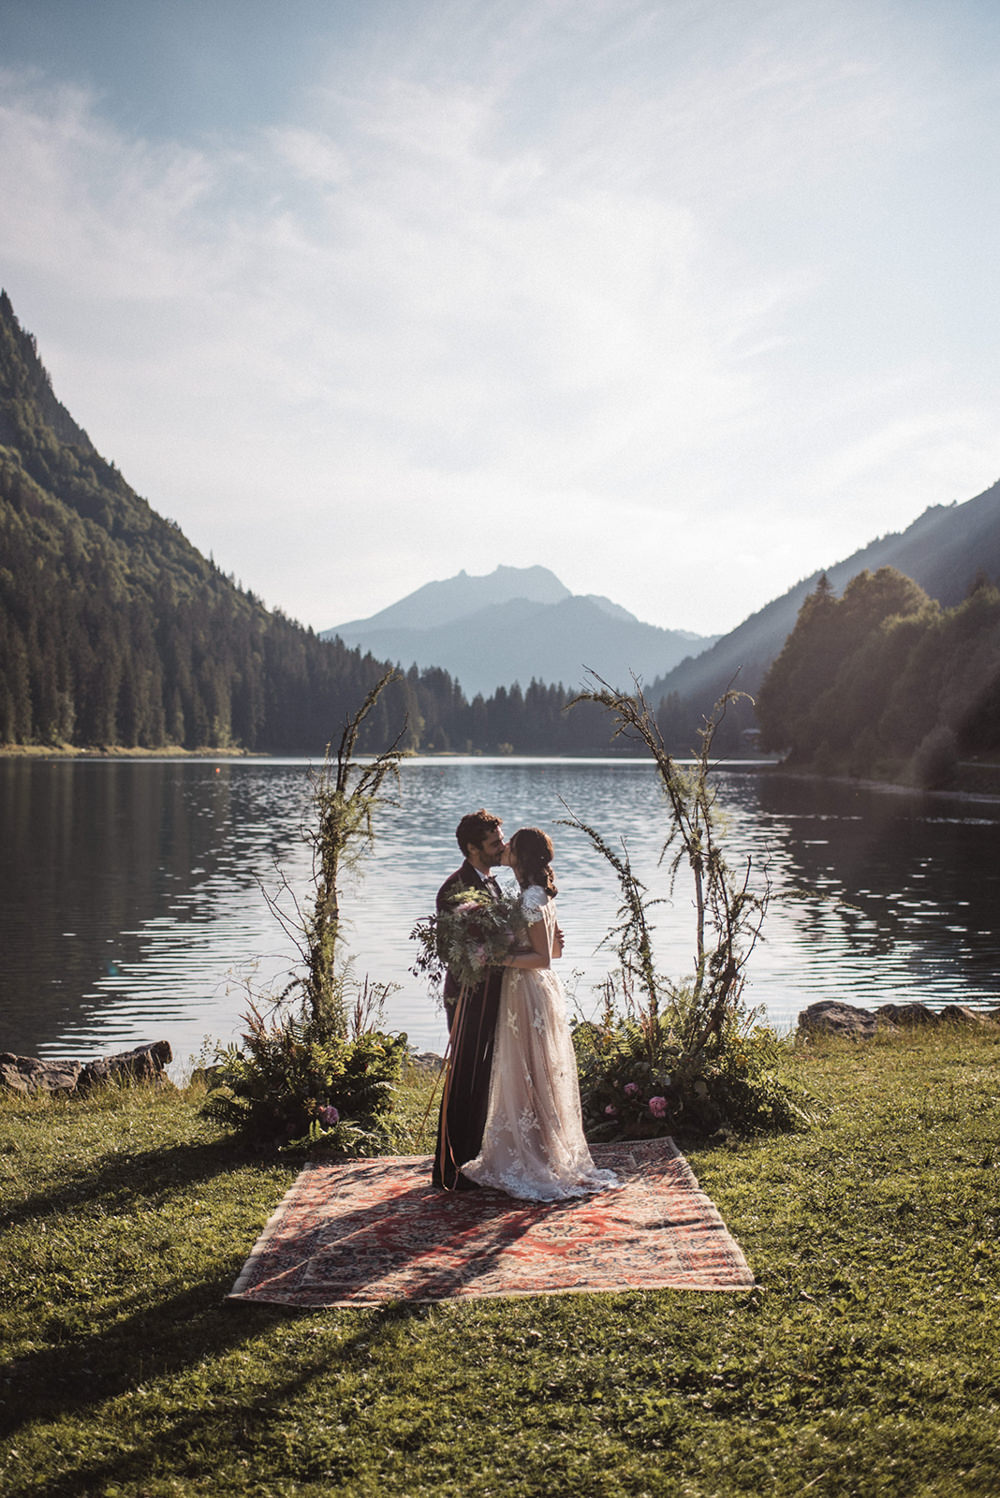 Backdrop Flowers Ceremony Persian Rug Aisle Branches Lake Outdoor French Alps Folk Boho Mountain Wedding Ideas Katja & Simon Photography